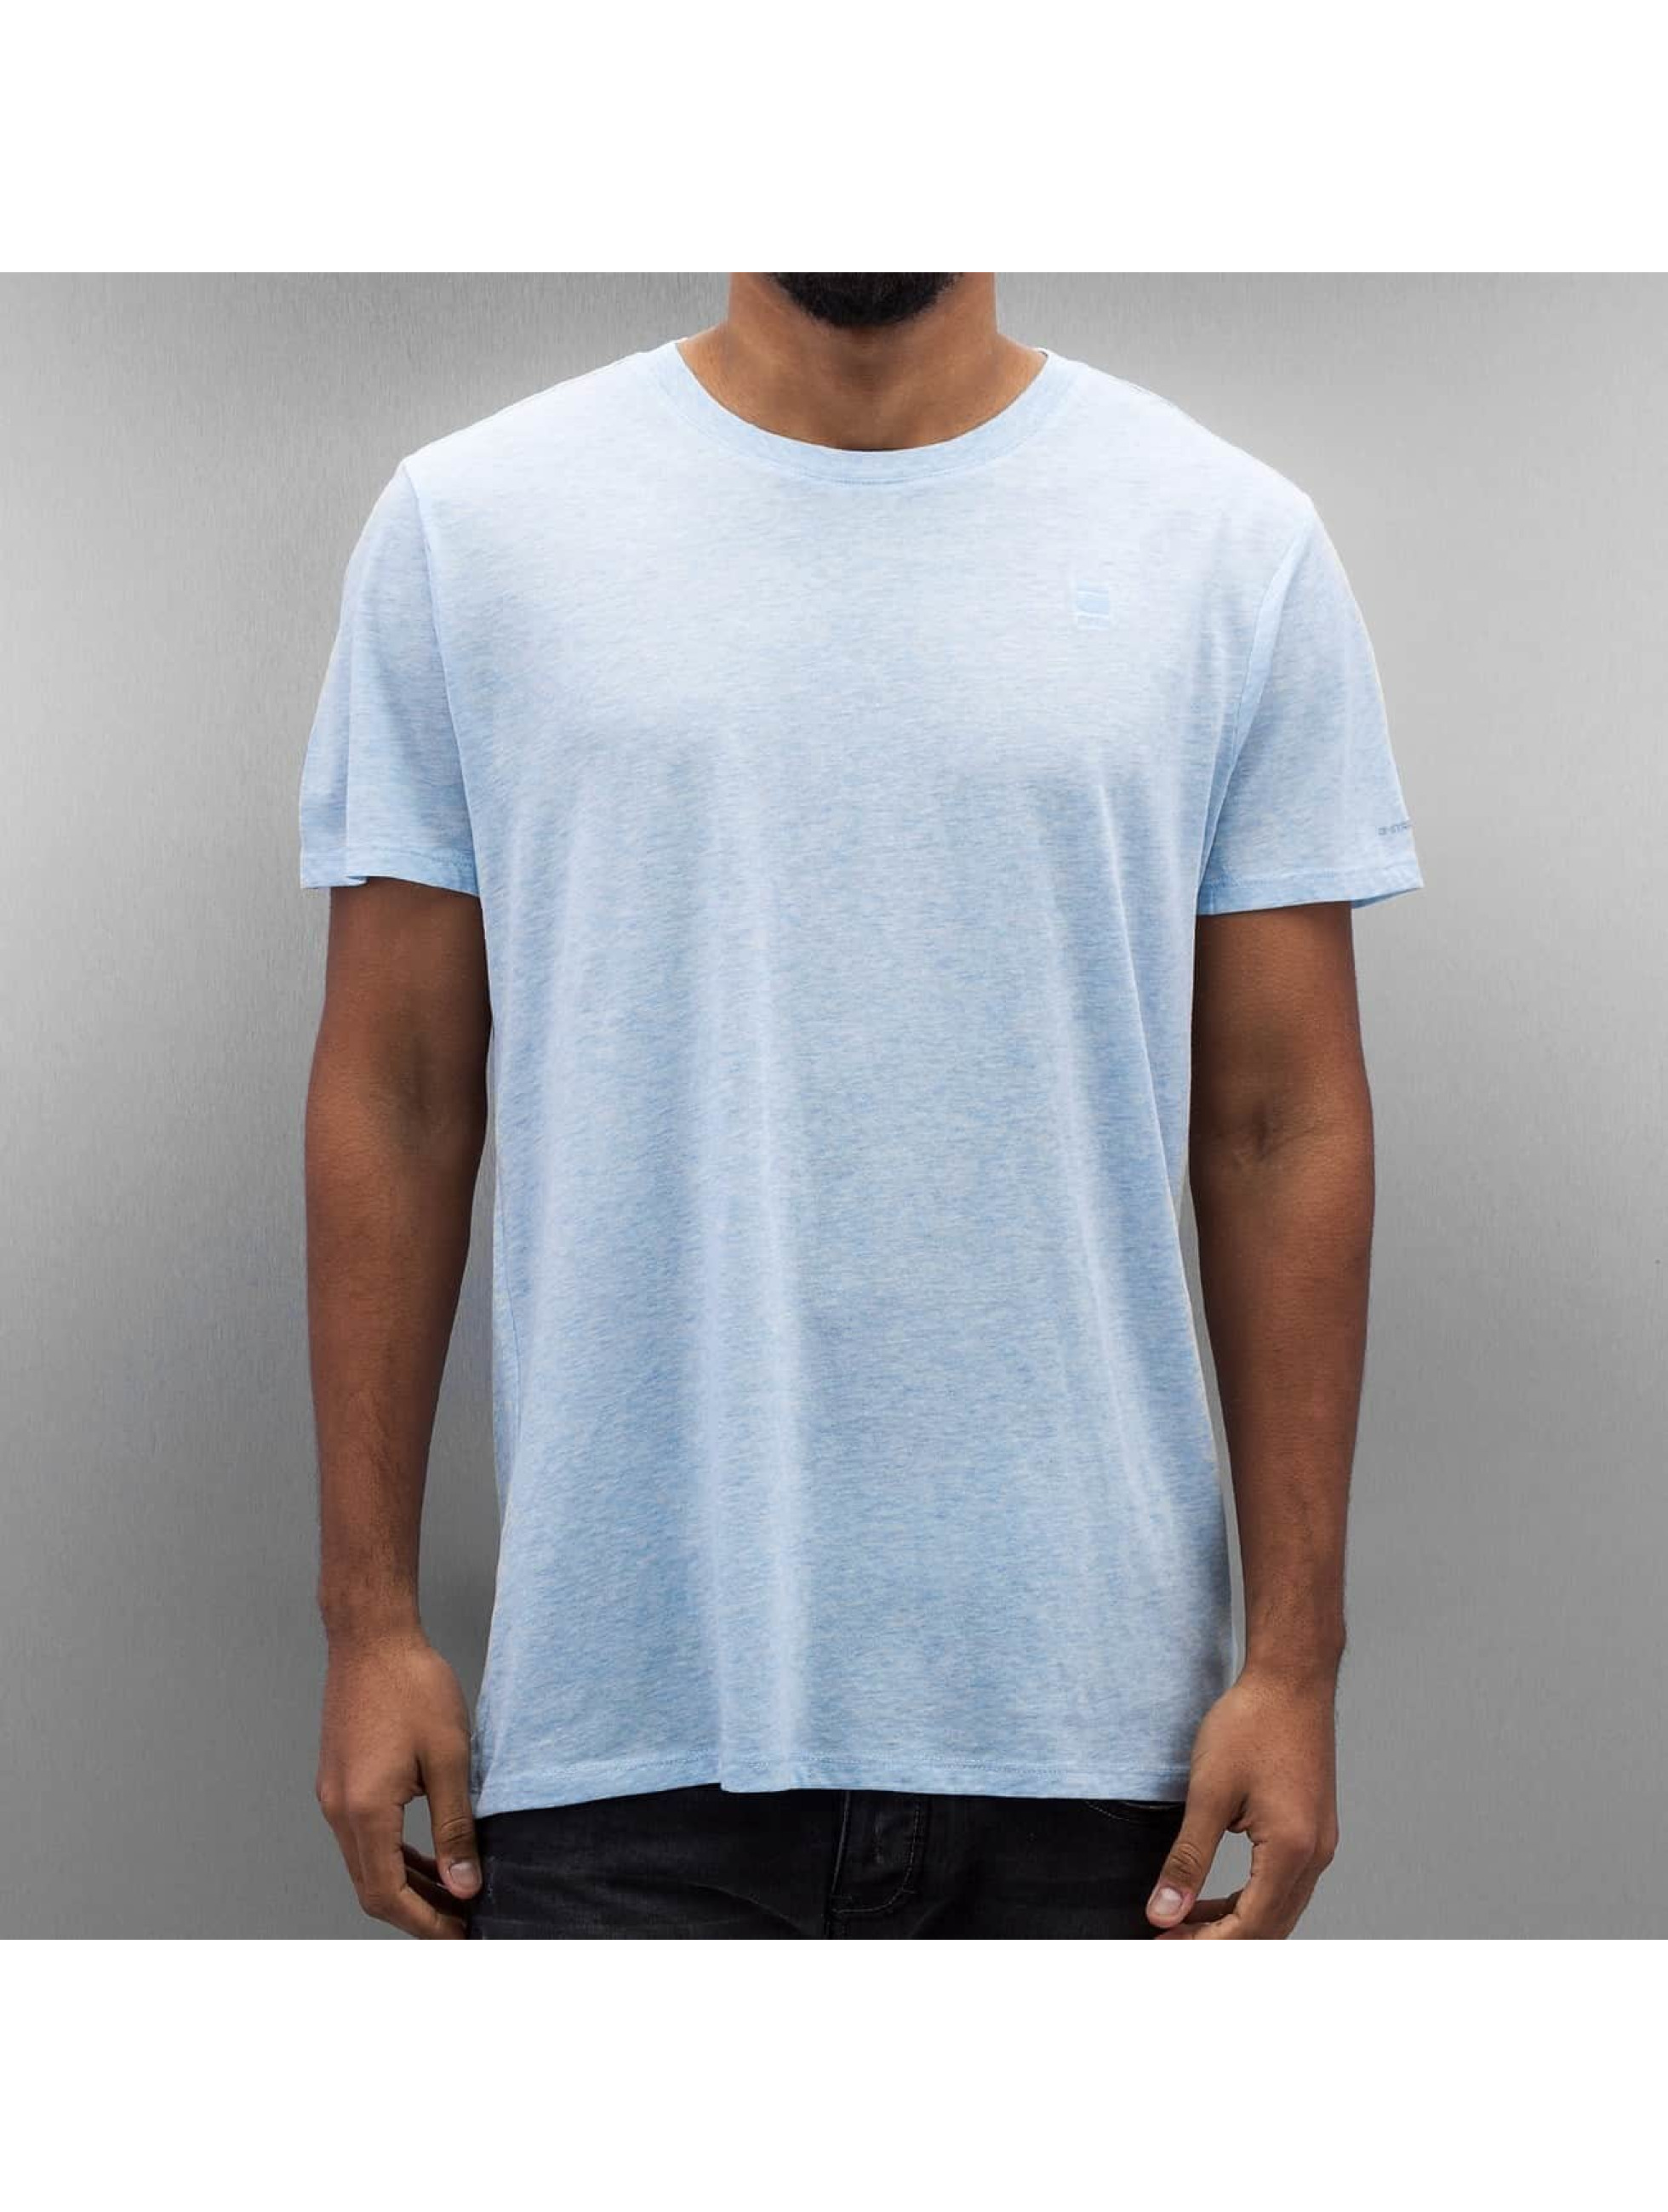 T-Shirt Base 2er Pack in blau